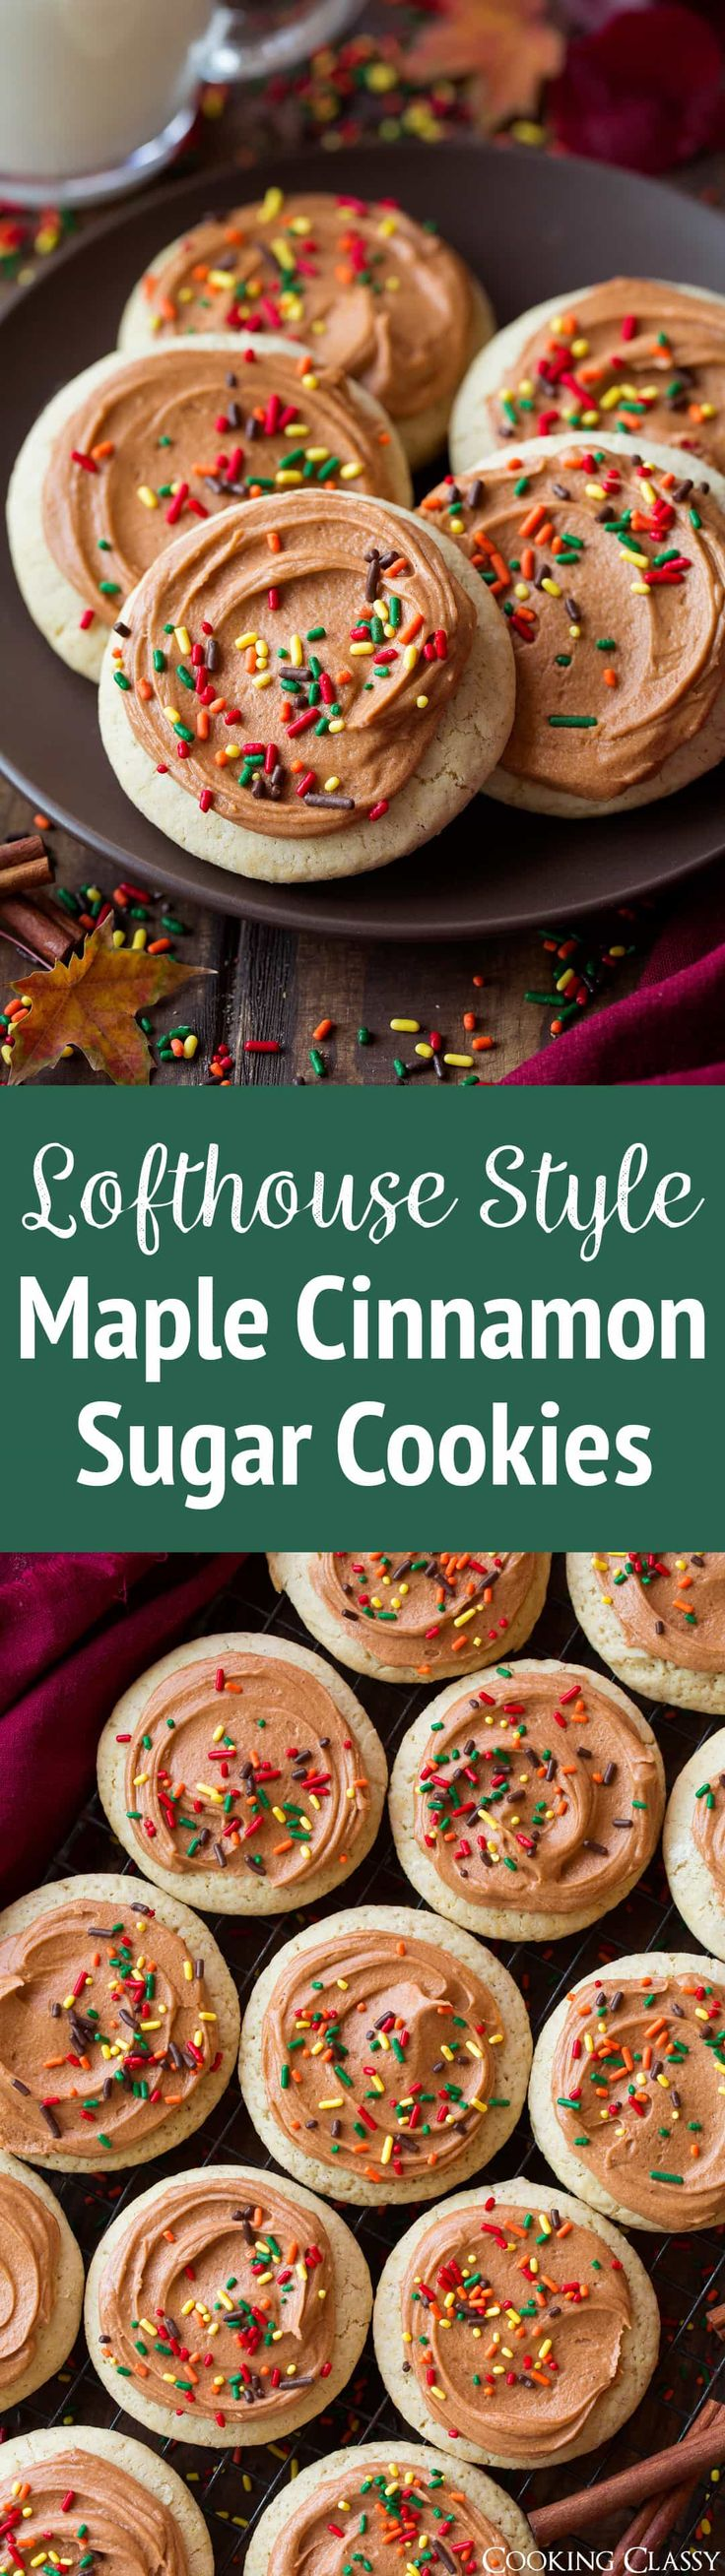 Soft Frosted Maple Cinnamon Sugar Cookies - these are melt-in-your-mouth insanely delicious! Love the texture and flavor of these cookies as did everyone else!